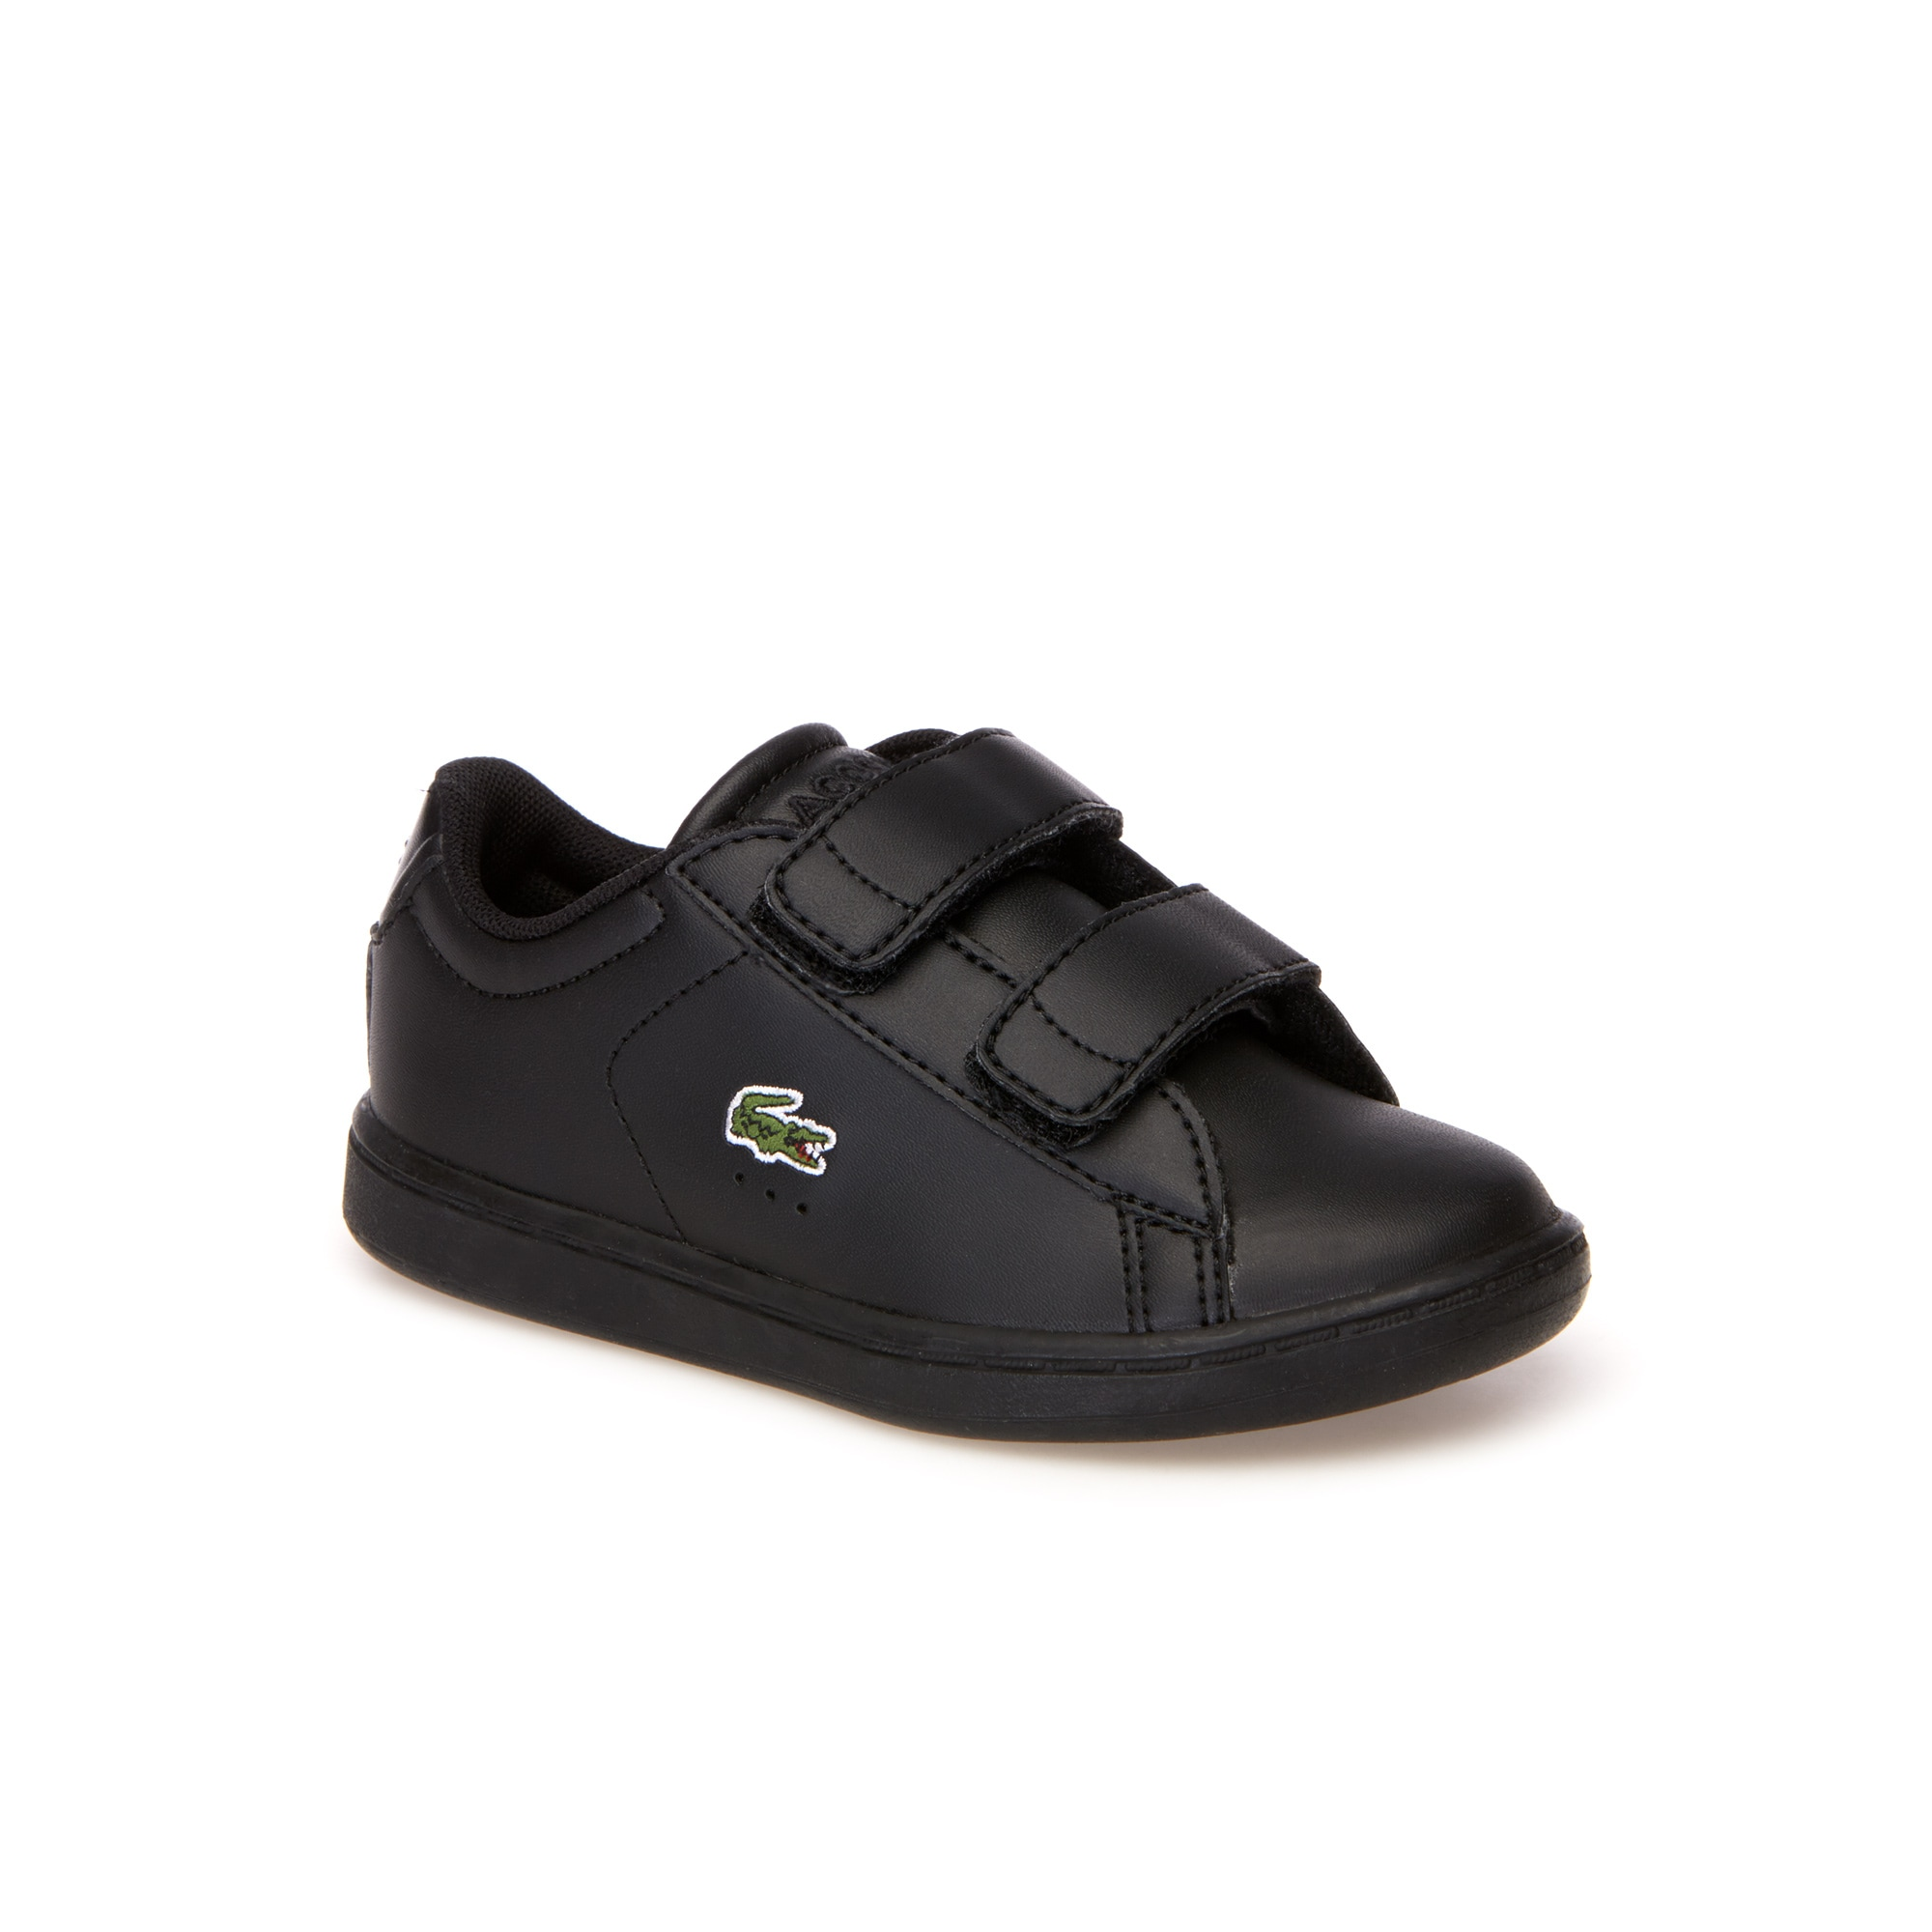 Sneakers Carnaby Evo kids' in similpelle